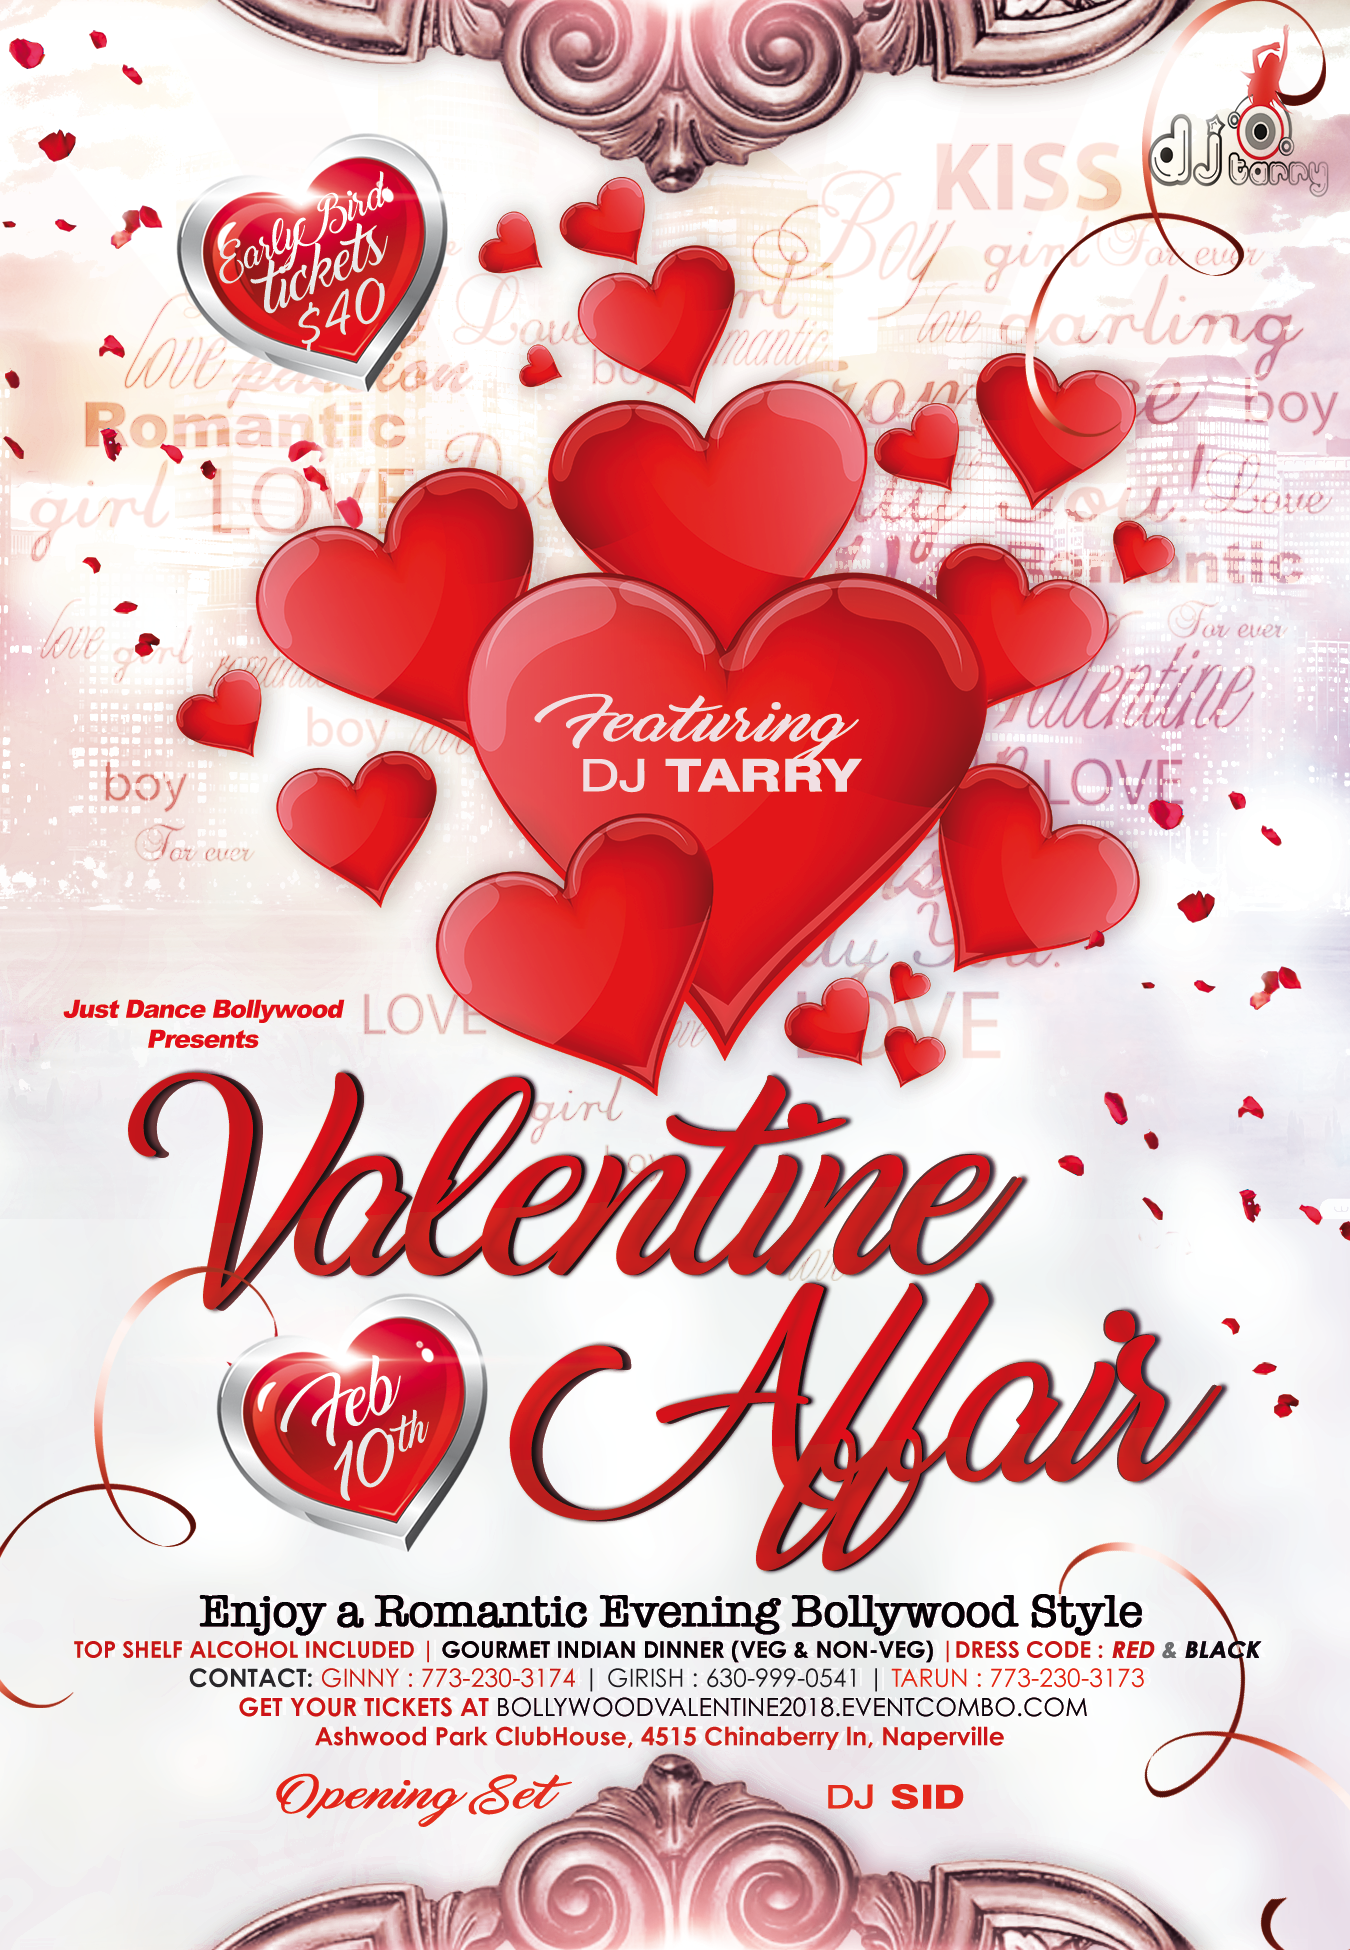 Bollywood Valentine Affair